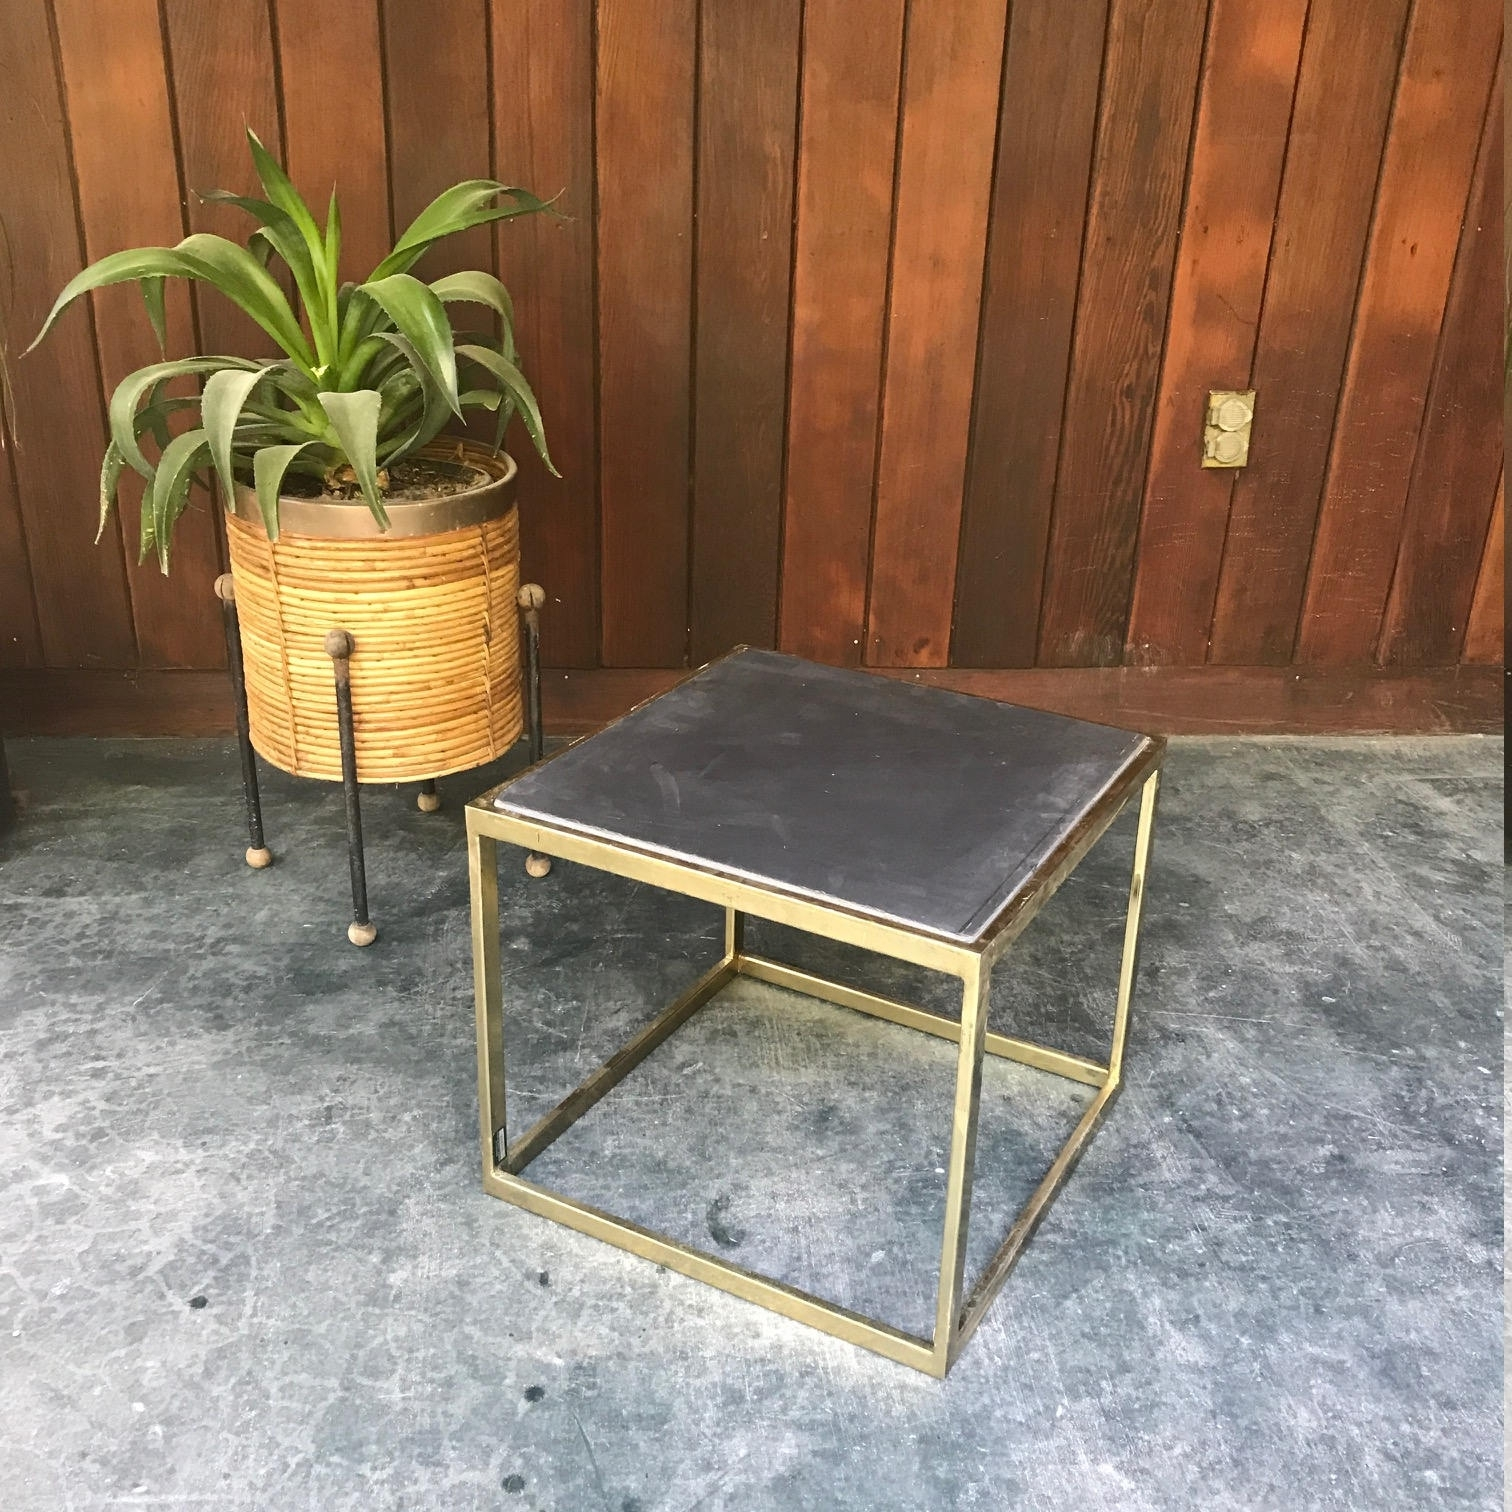 Vintage Mid-Century Seagrams Brass Cube Side Table pertaining to Brass Iron Cube Tables (Image 28 of 30)